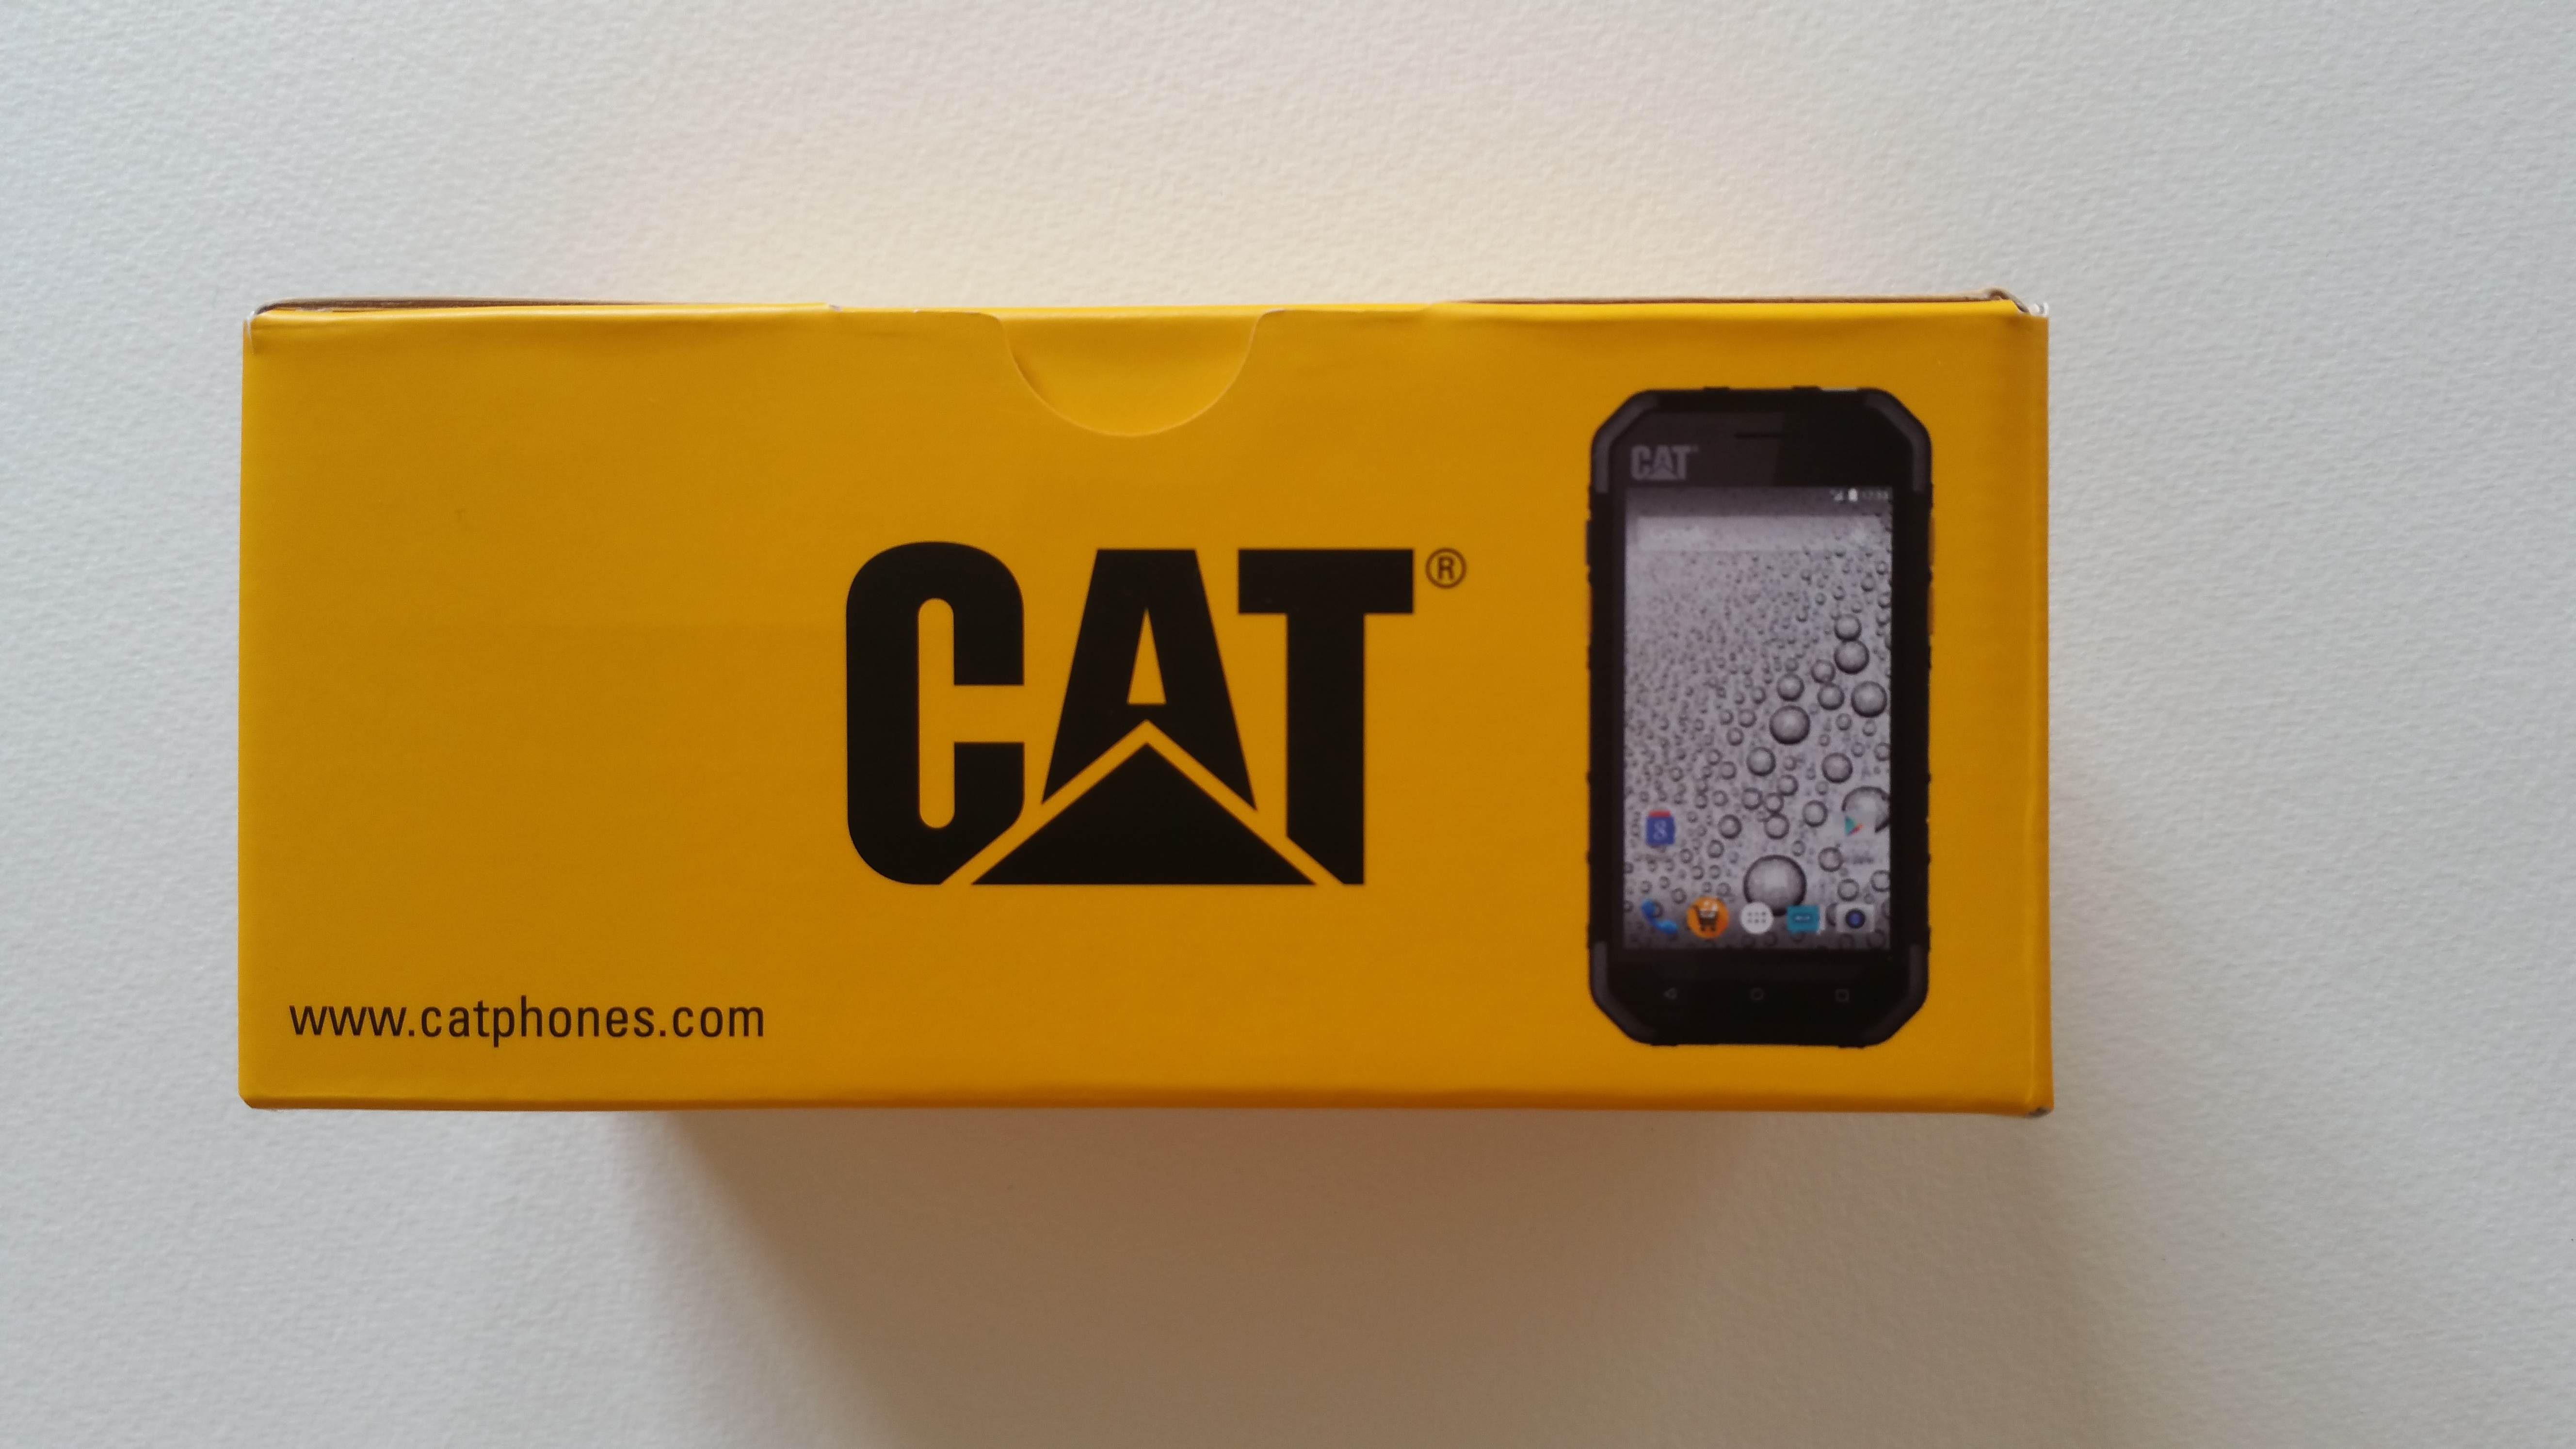 test cat s30 le smartphone de chantier de caterpillar page 4 sur 4. Black Bedroom Furniture Sets. Home Design Ideas